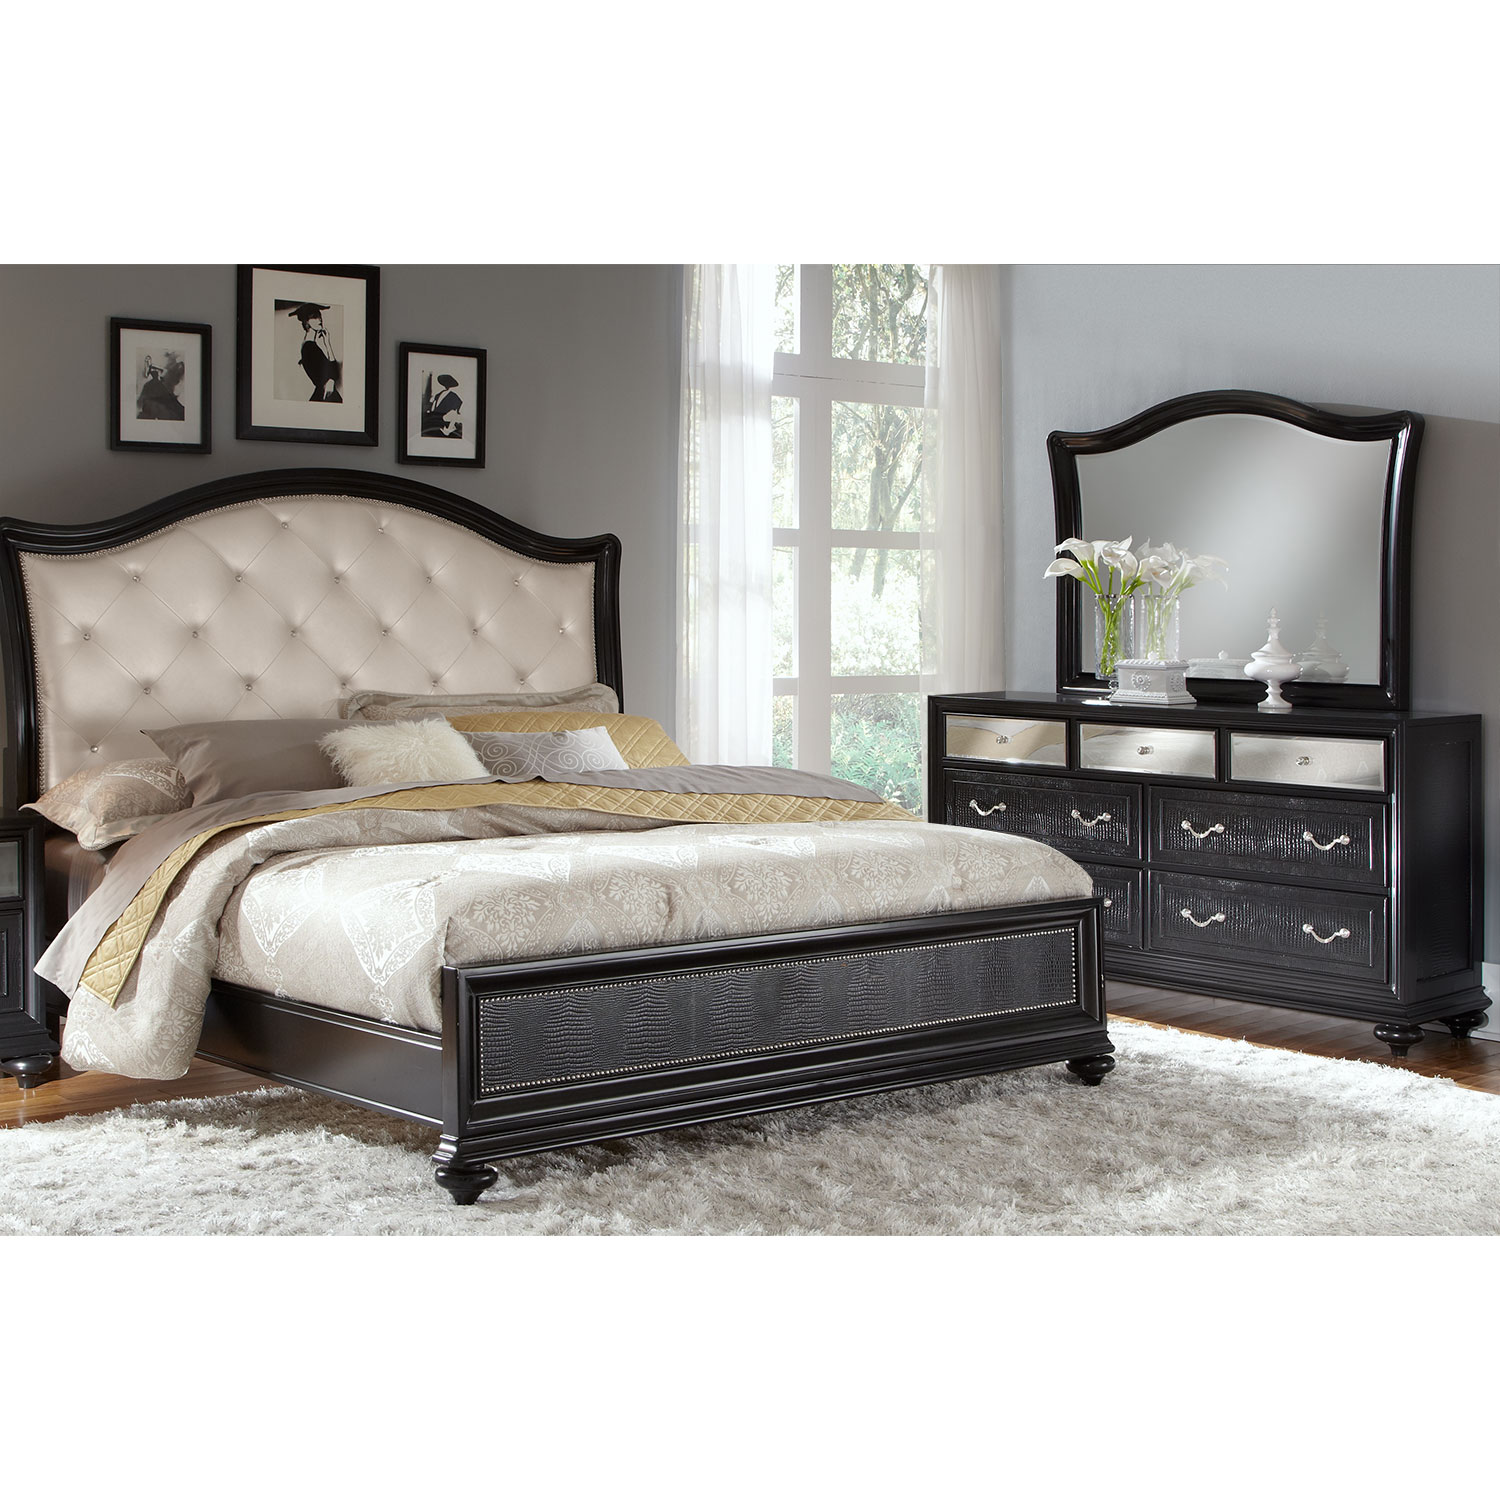 marilyn 5-piece queen bedroom set - ebony | american signature